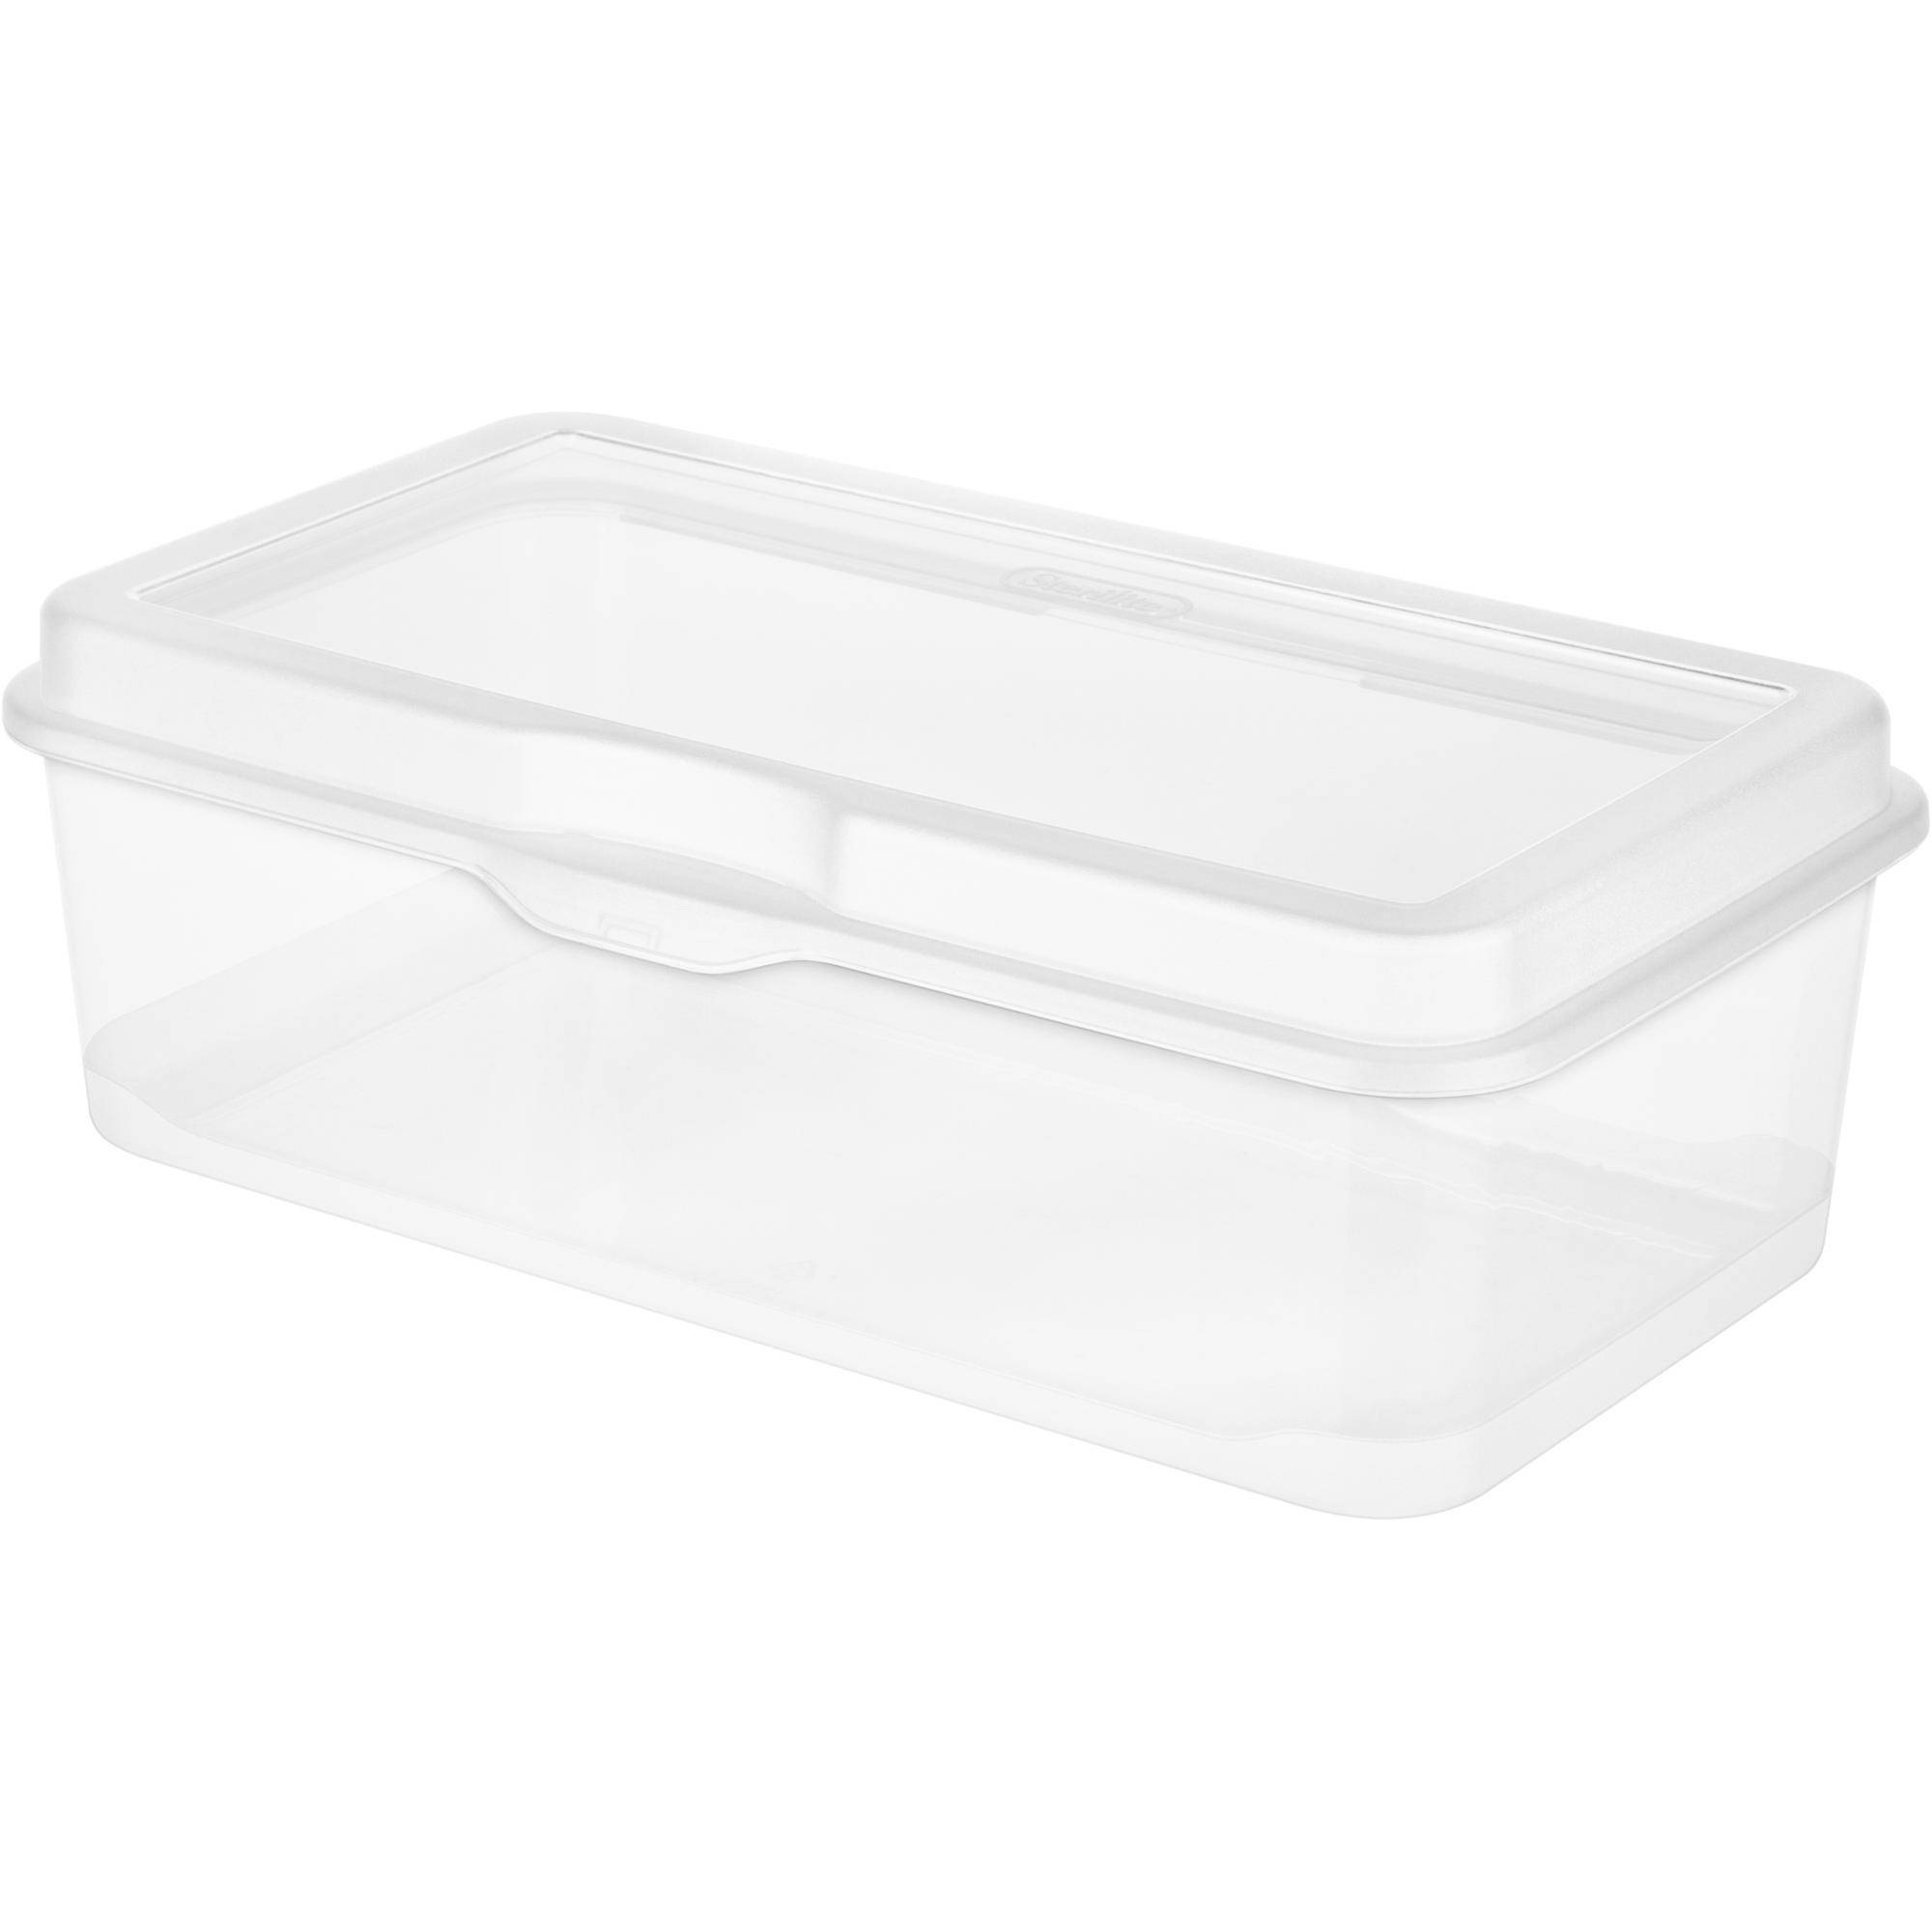 Sterilite Large Flip Top Box- Clear (Available in Case of 6 or Single Unit)